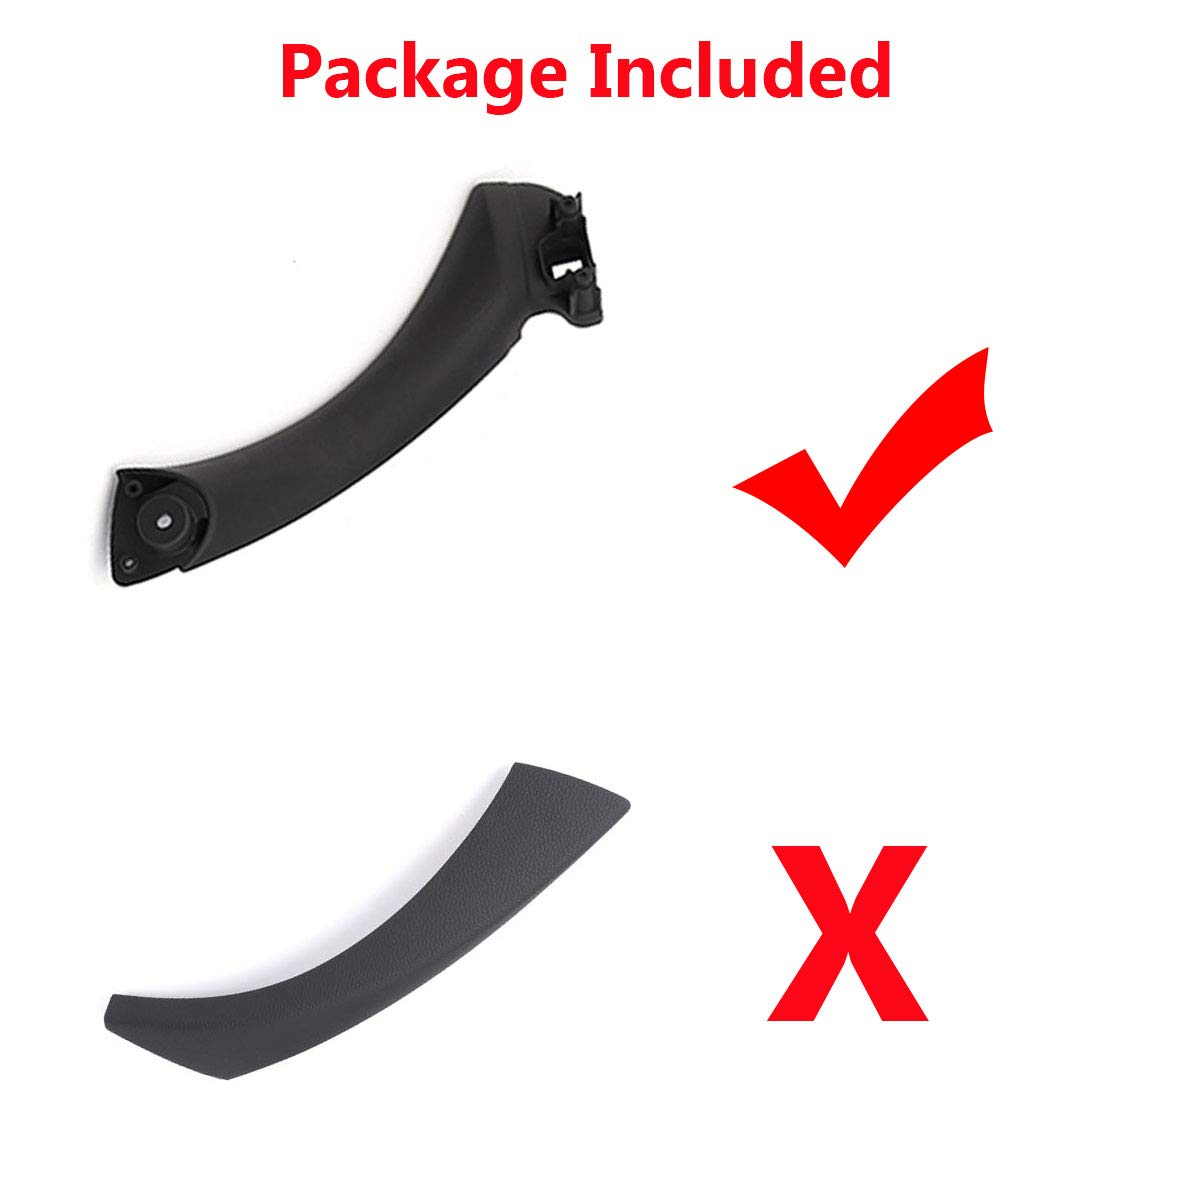 TTCR-II Door handle Outer Covers Compatible with BMW 3 Series E90 E91 Black Right Front//Rear Interior Passenger Side Door Handle Trim Fits: 323 325 328 330 335 2006-2011